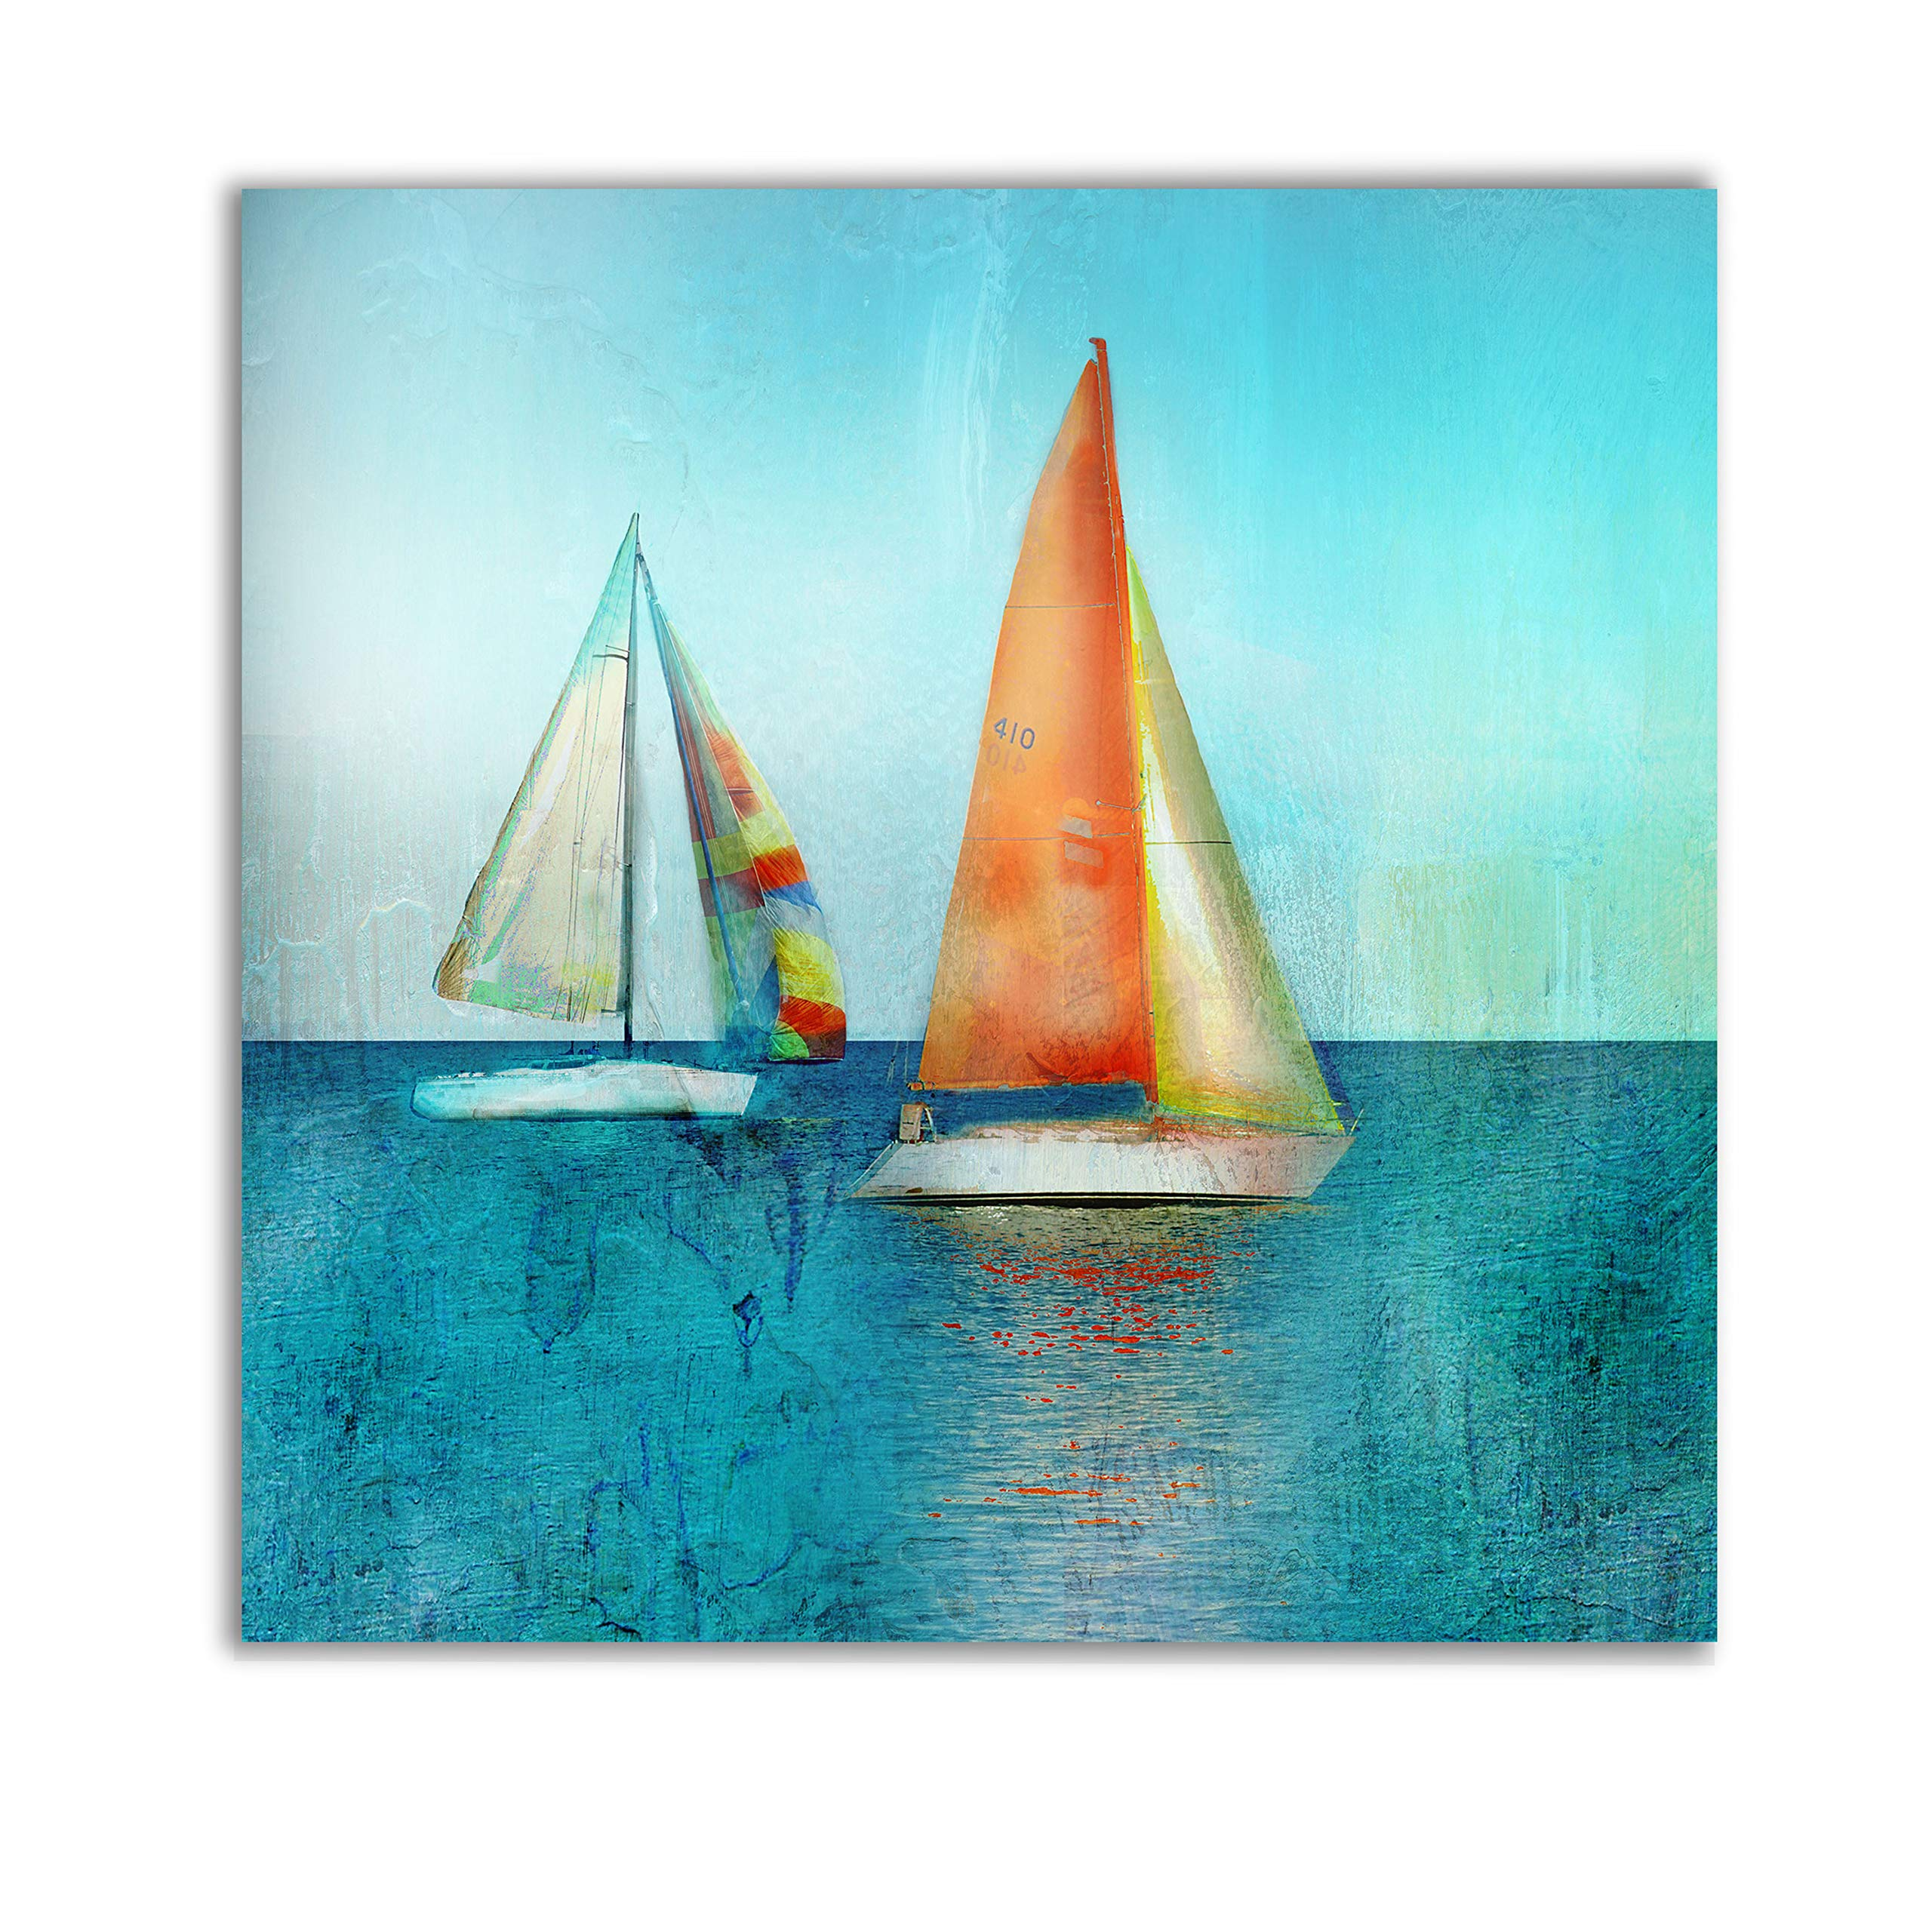 WEXFORD HOME Color Tint Sail Gallery Wrapped Canvas Wall Art, 10x10